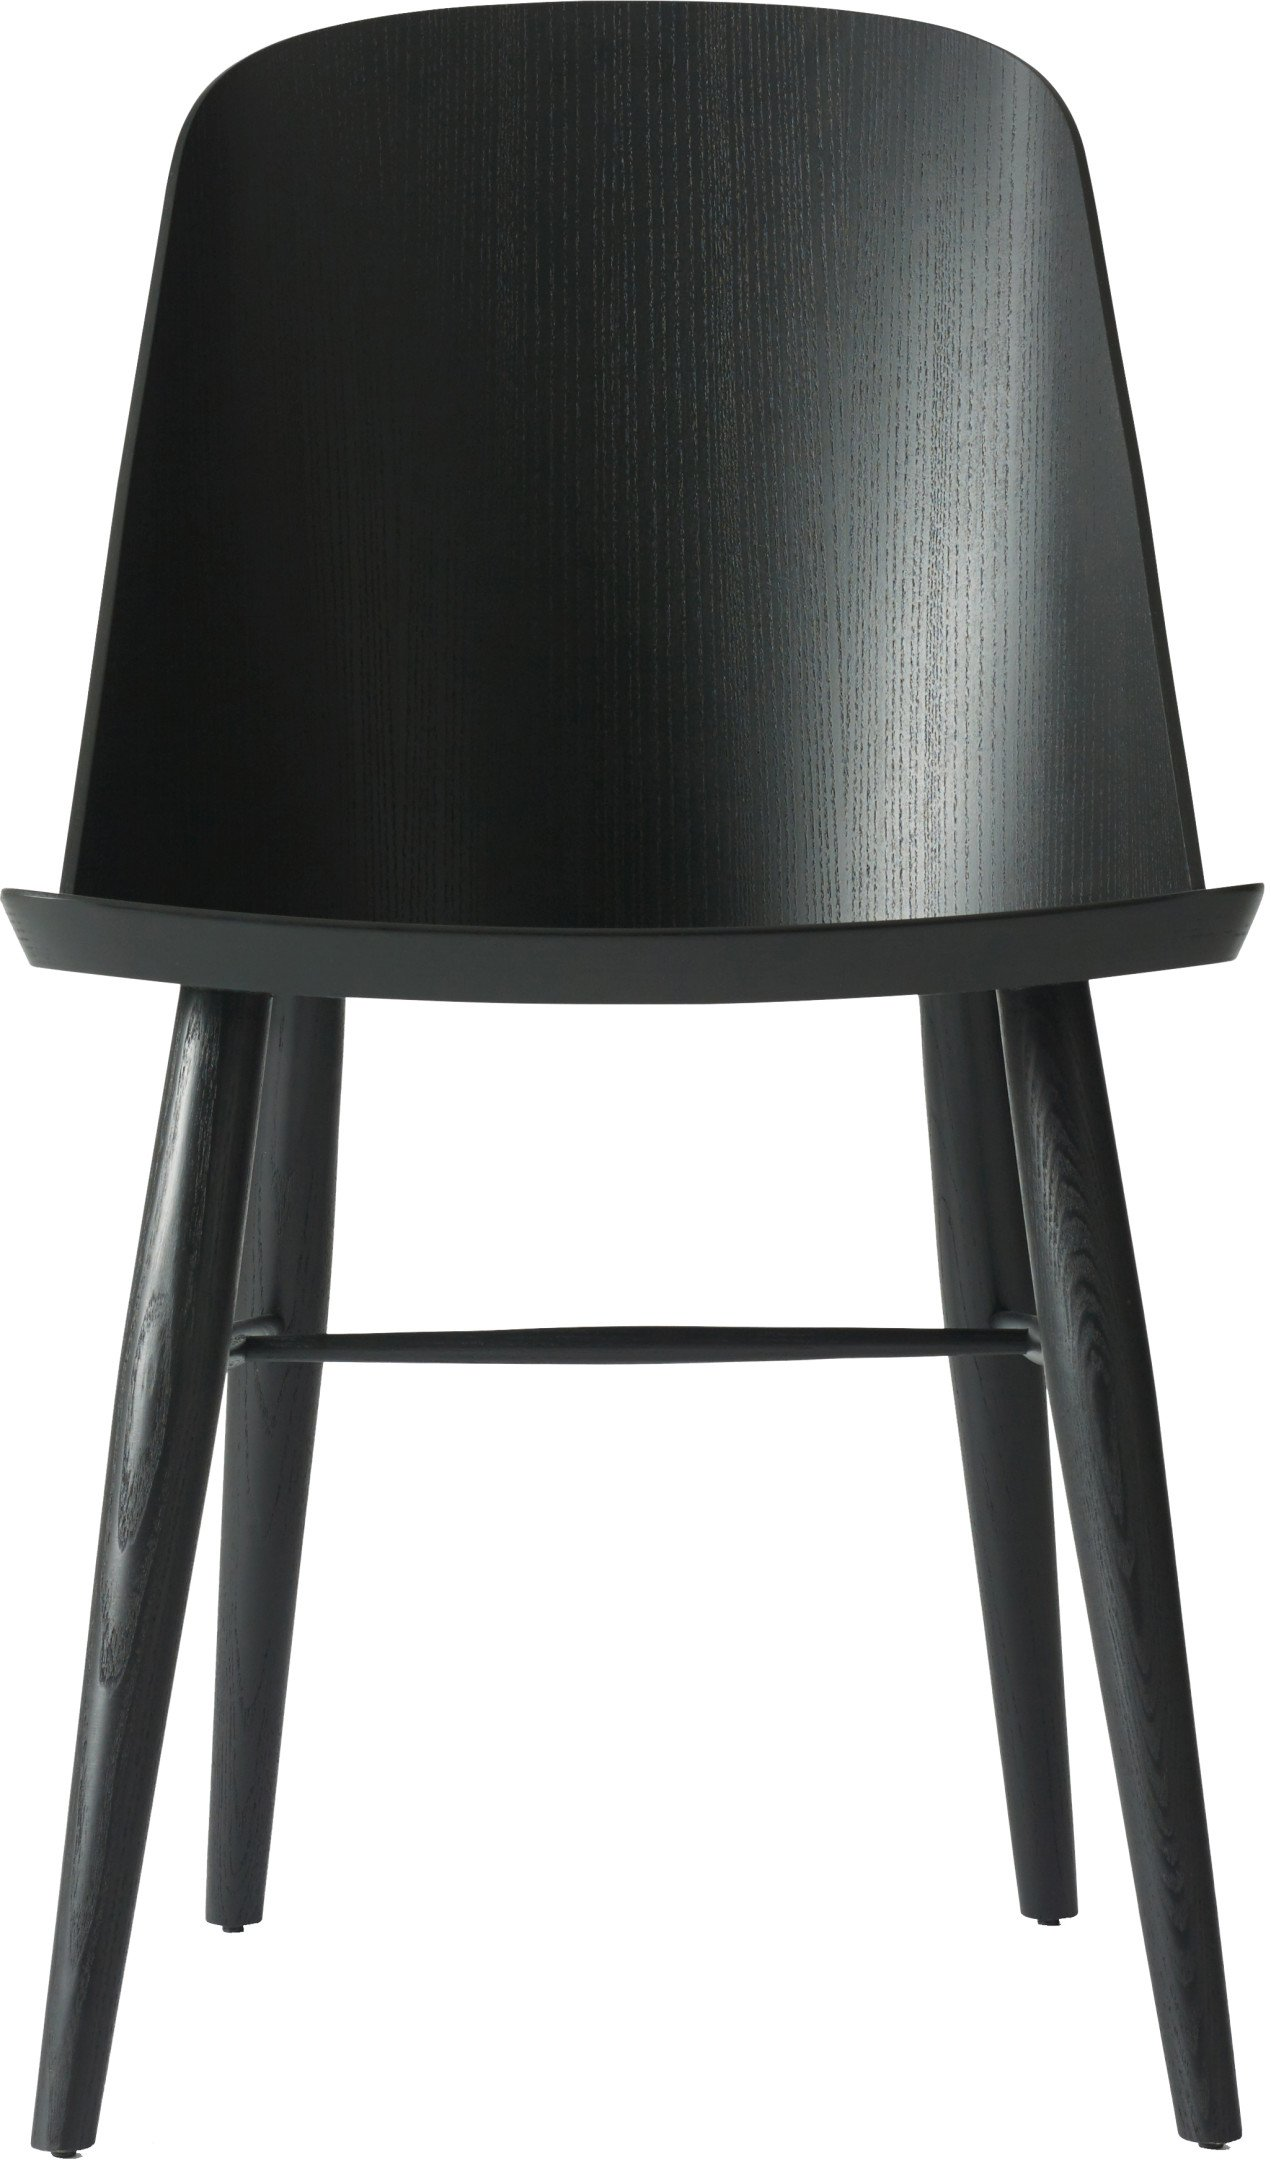 Synnes Chair Black Ash by F. Svantun for Menu